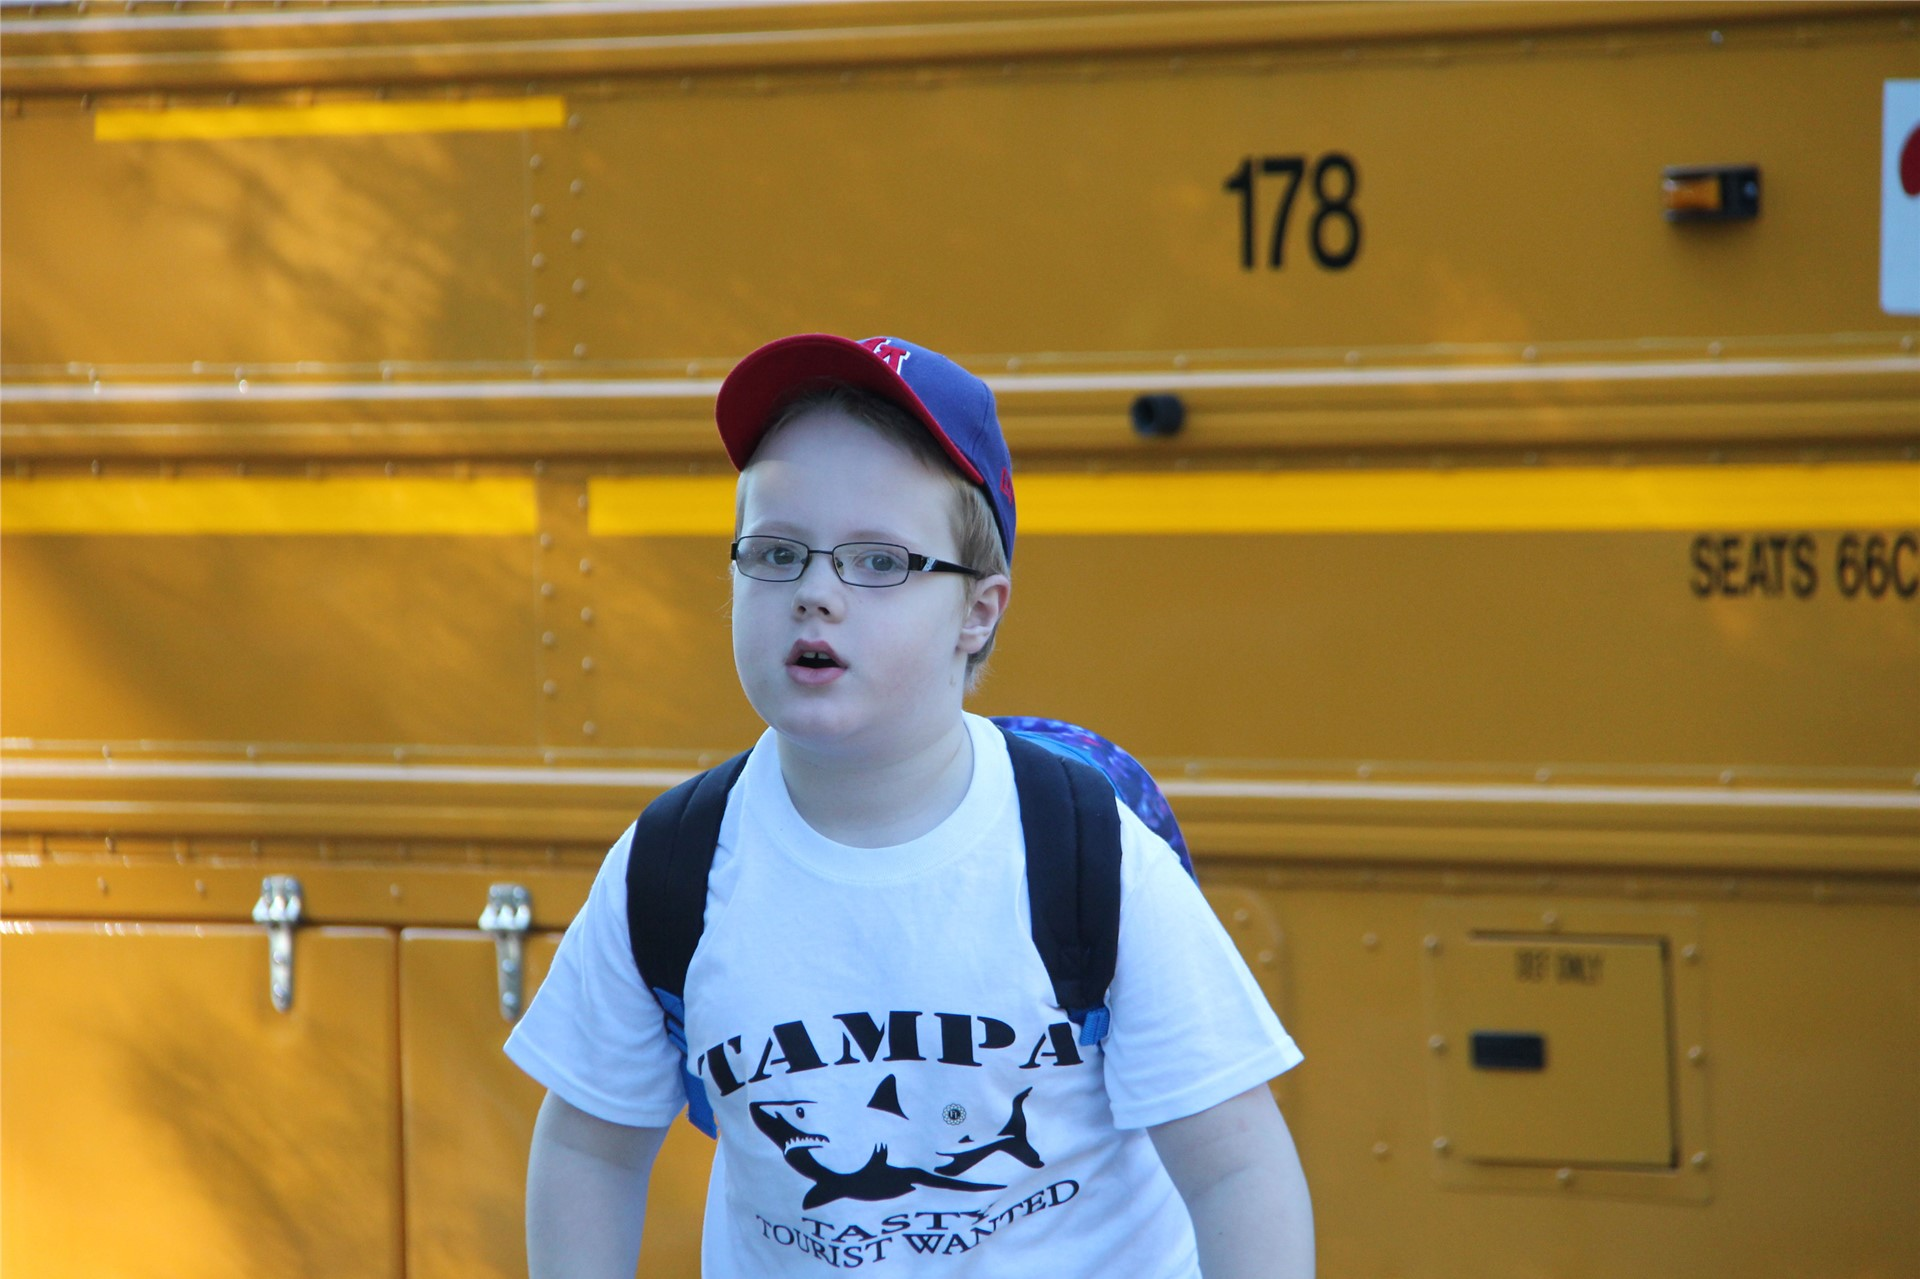 student standing by bus